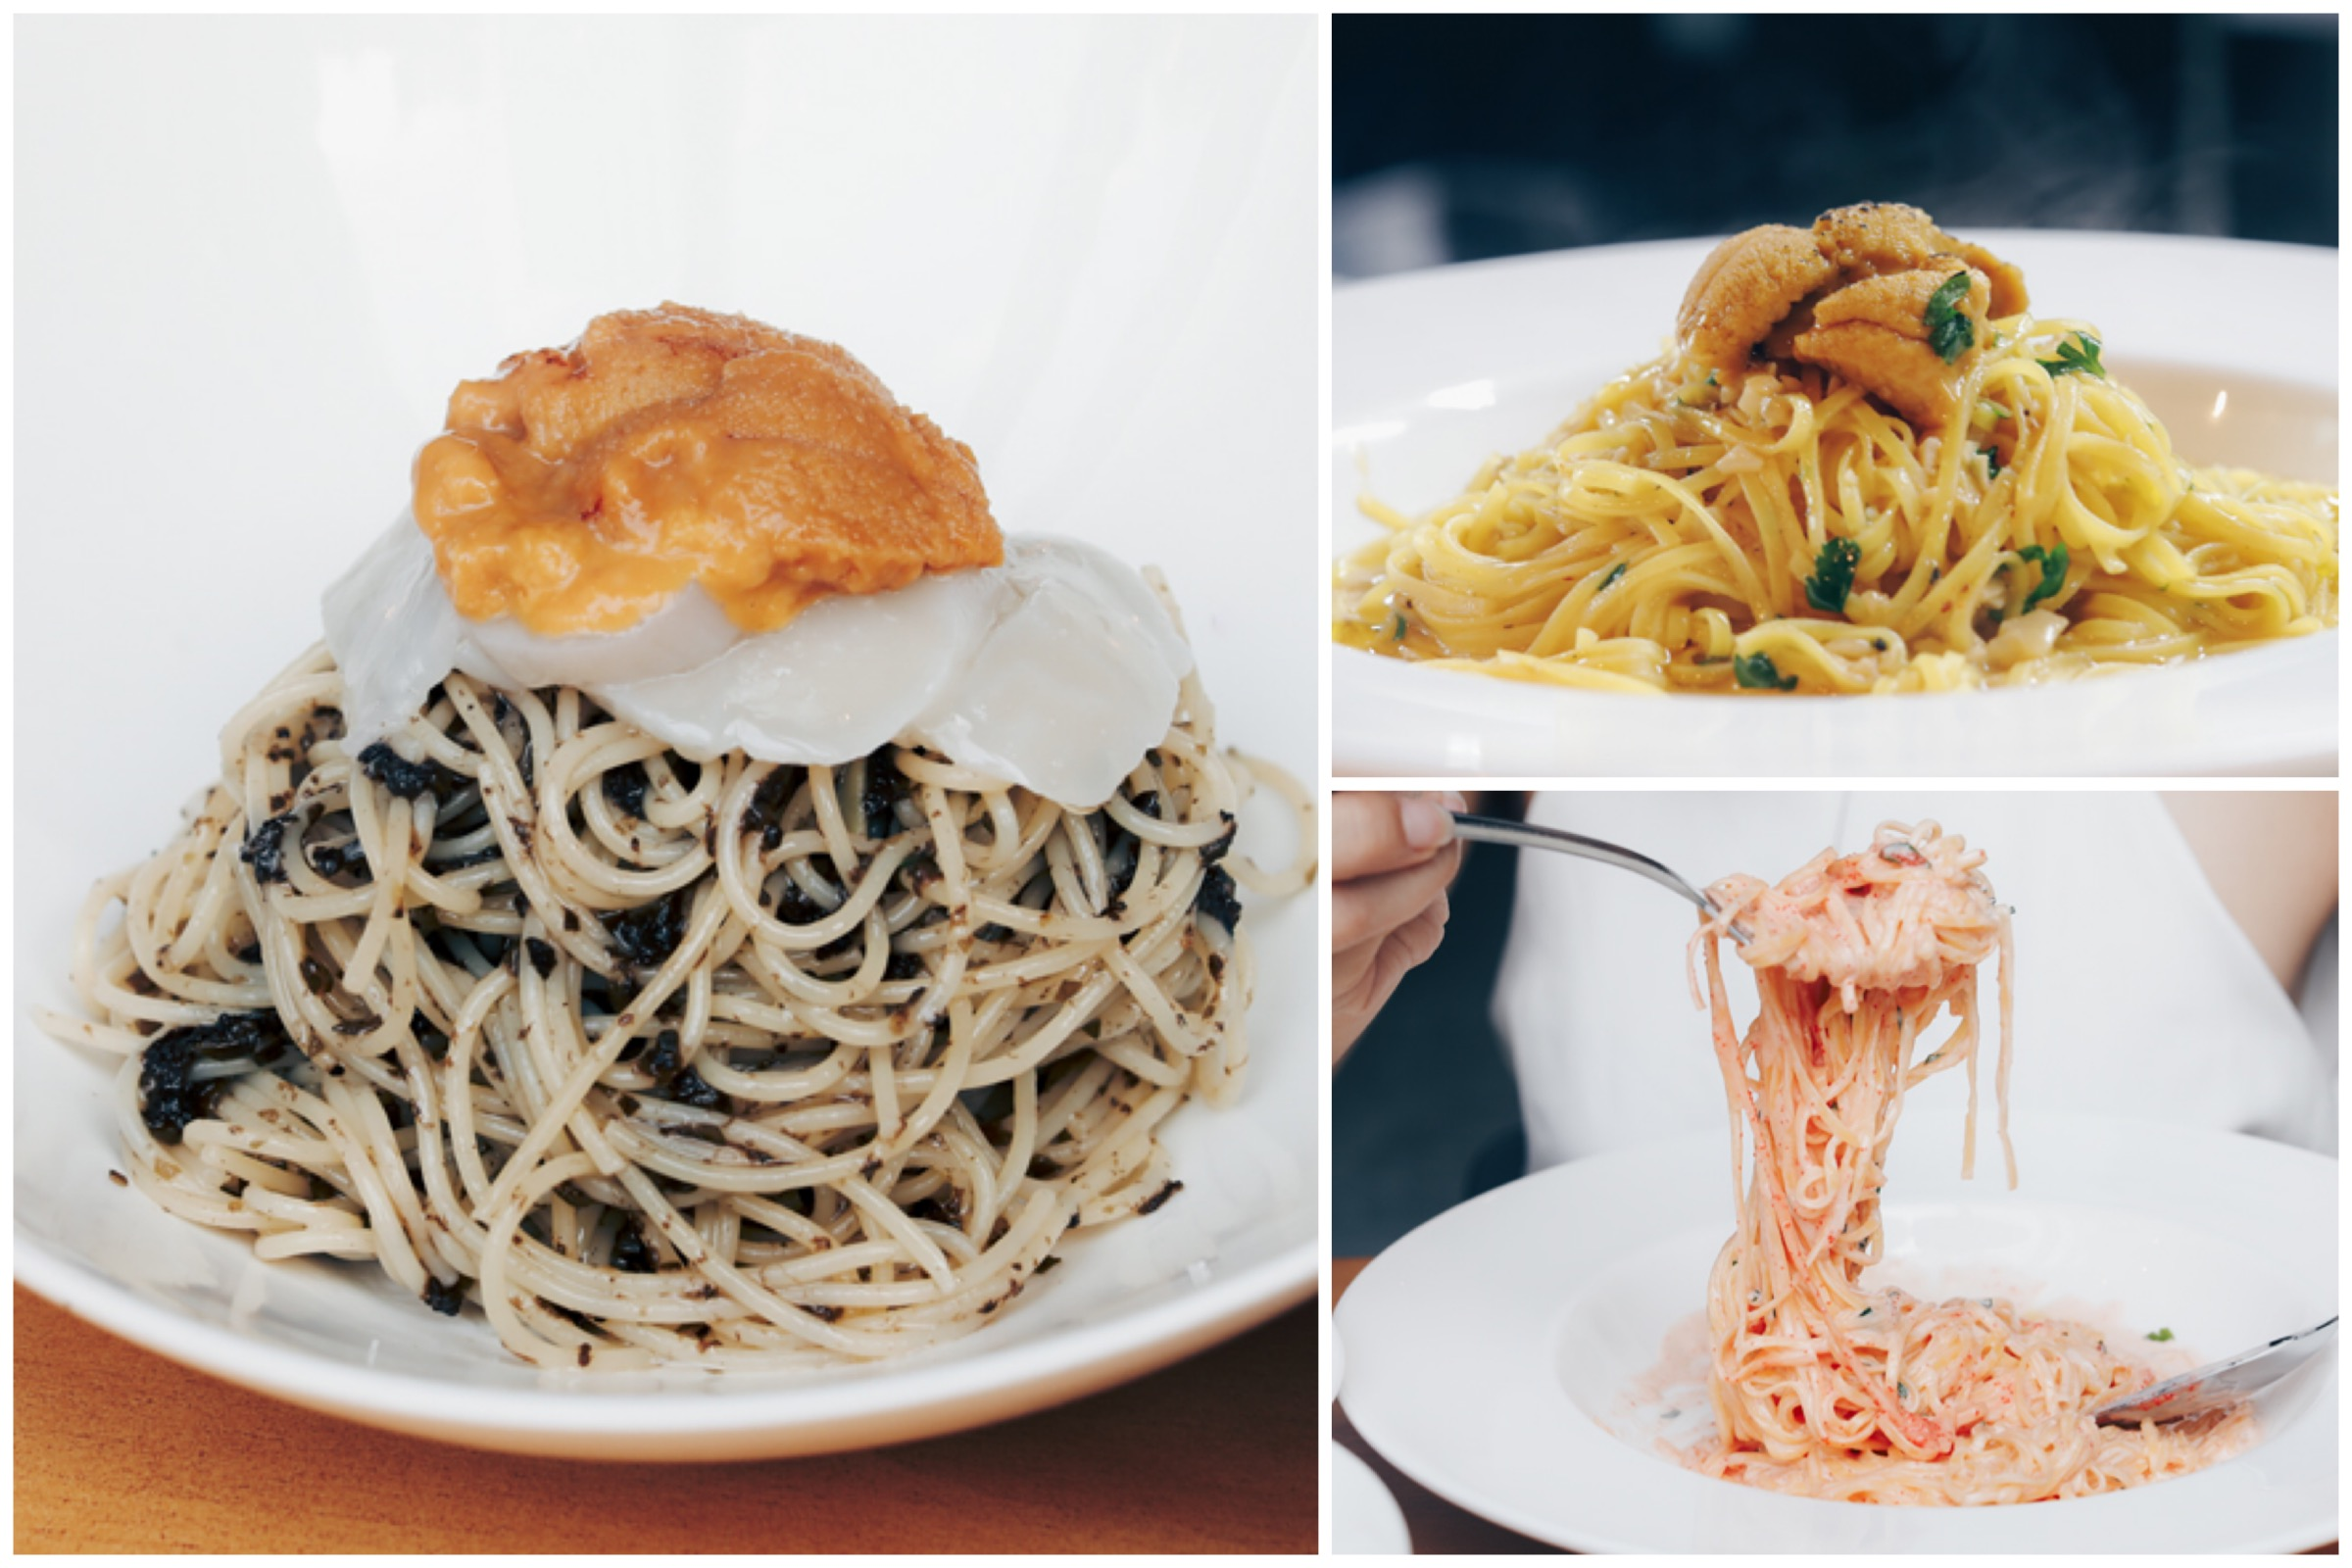 PocoLoco - Authentic, Inexpensive Pasta Found At Novena And Yishun, With Japanese Uni & Mentaiko Pasta Specials